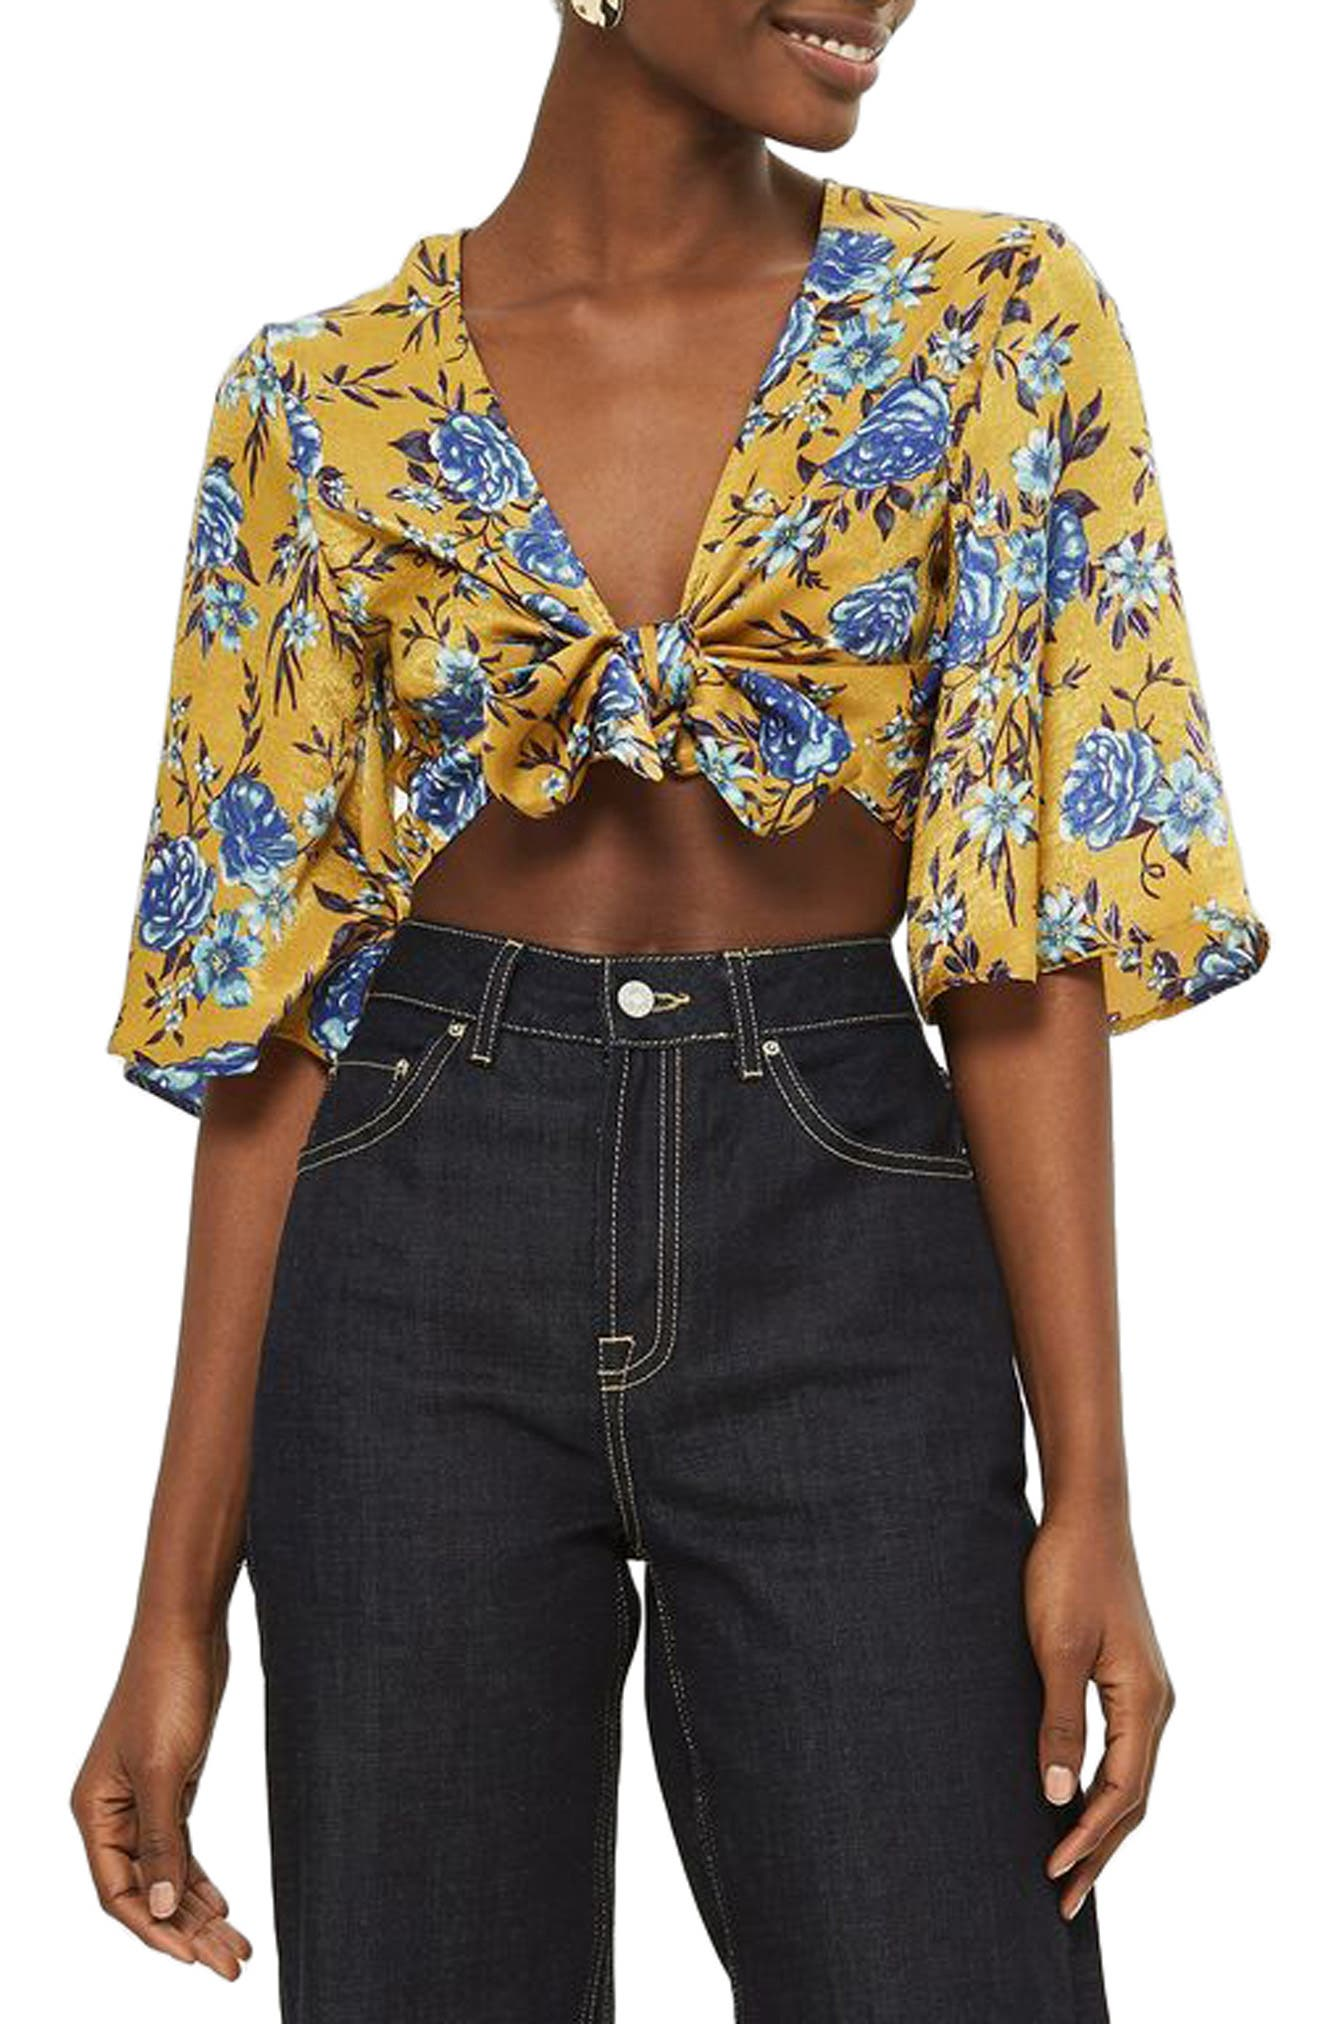 Alternate Image 1 Selected - Topshop Floral Knot Front Crop Top